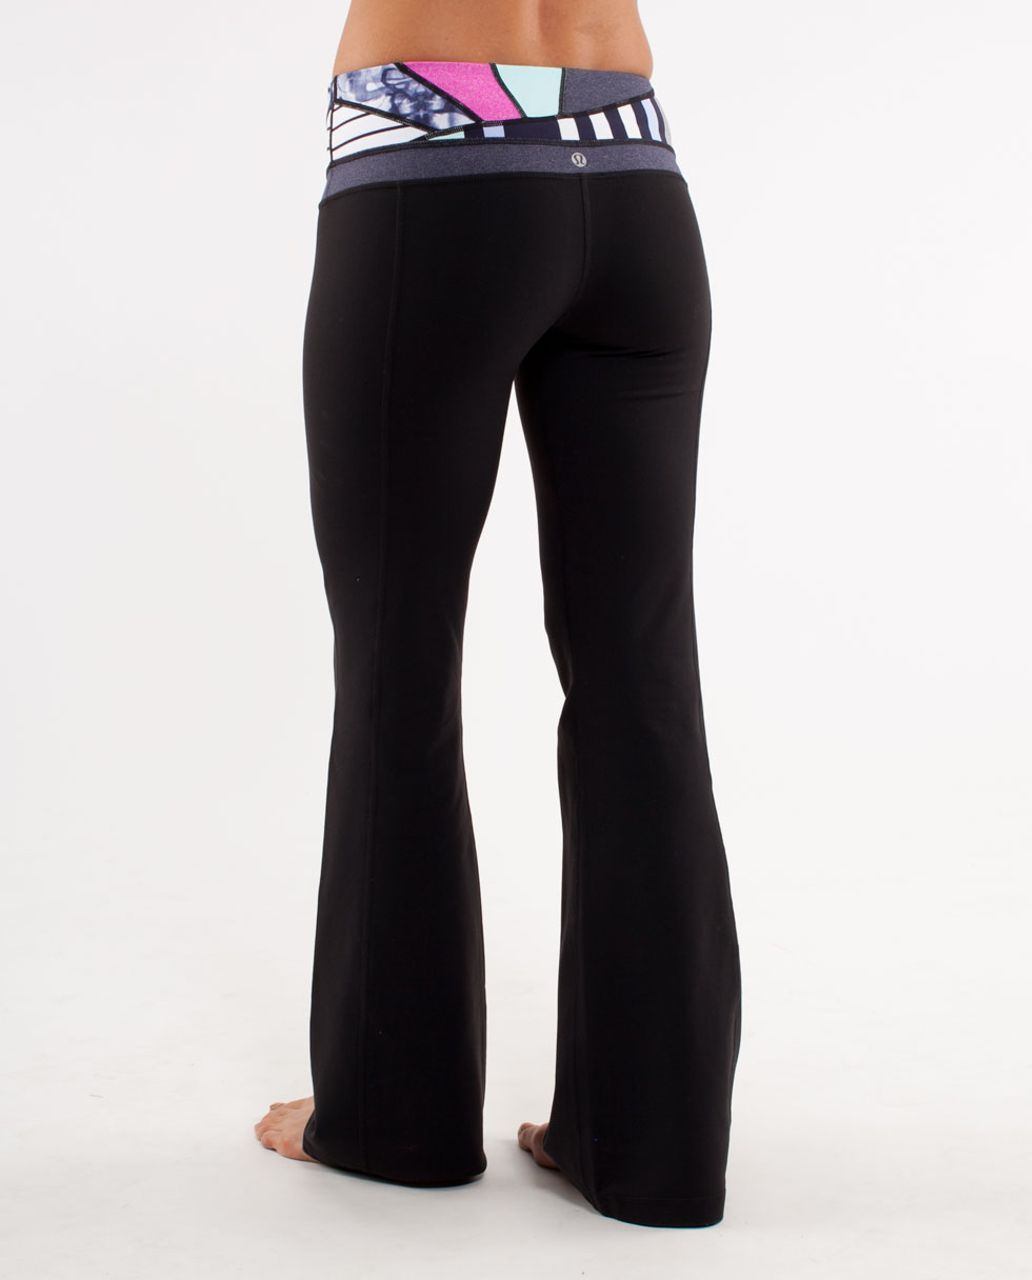 Lululemon Groove Pant (Regular) - Black /  Quilting Spring 13 /  Heathered Deep Indigo